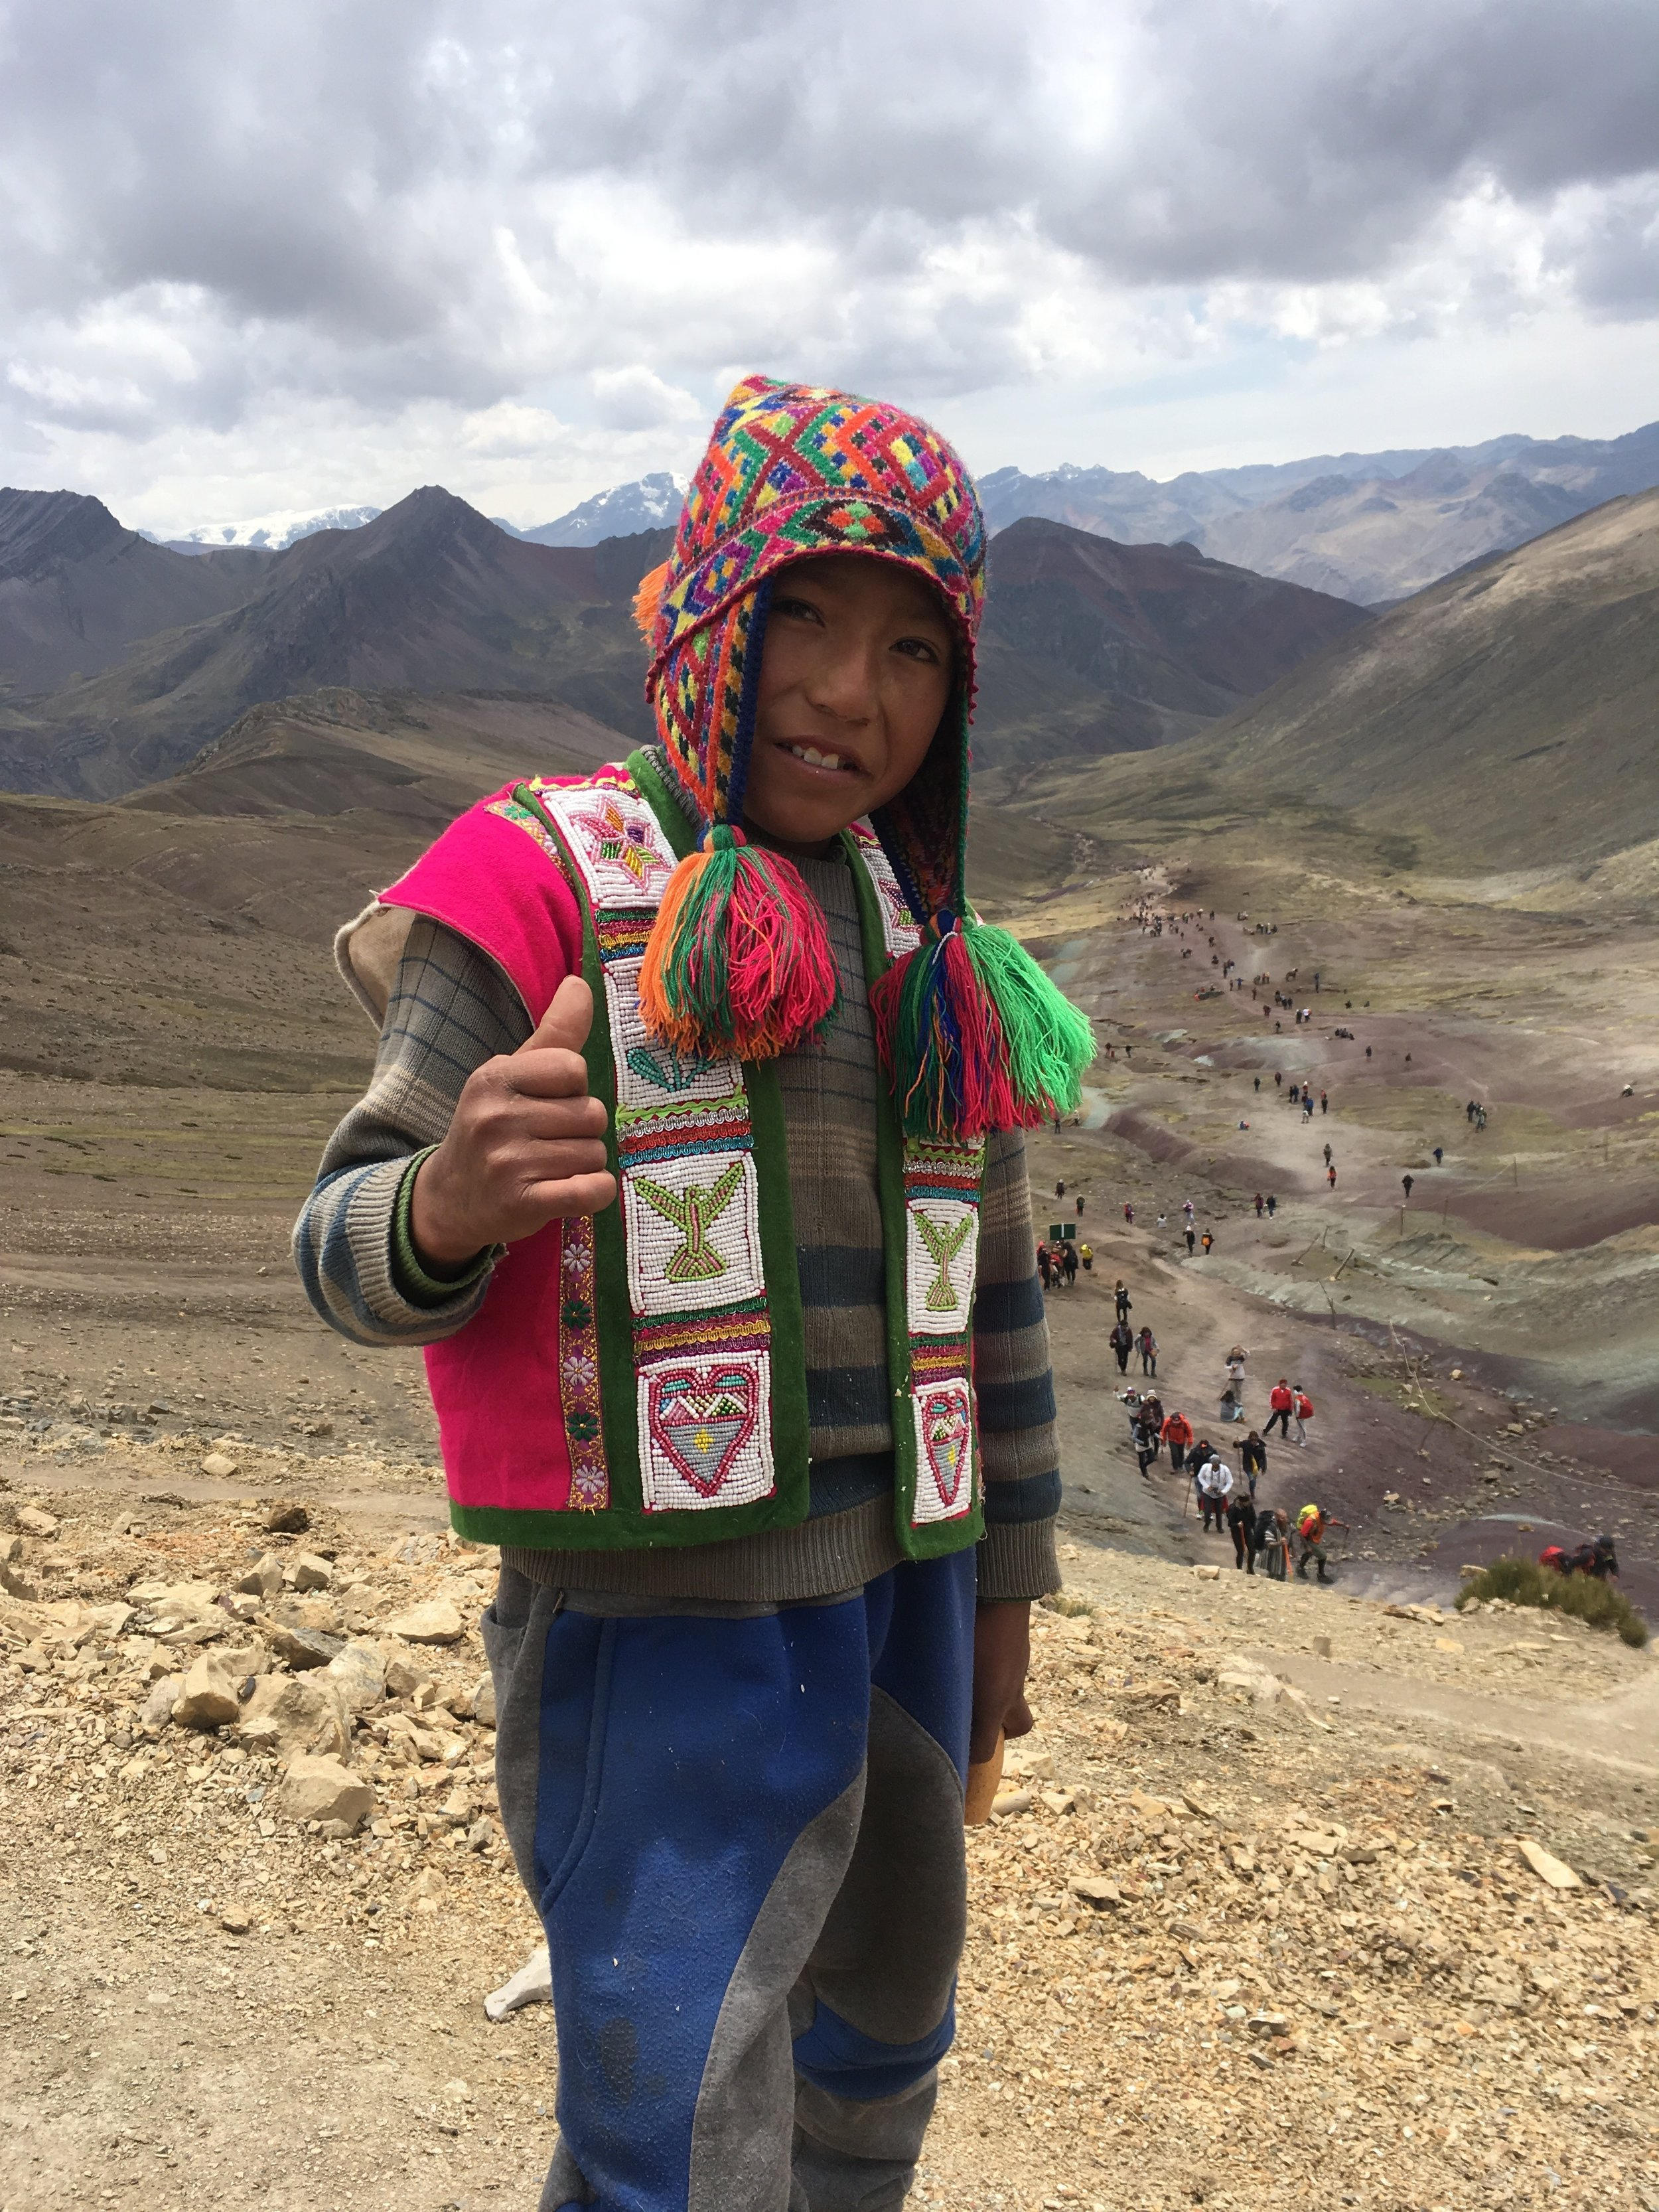 This little boy asked for 1 Sole for this picture. Behind him, you can see the trail up the valley.